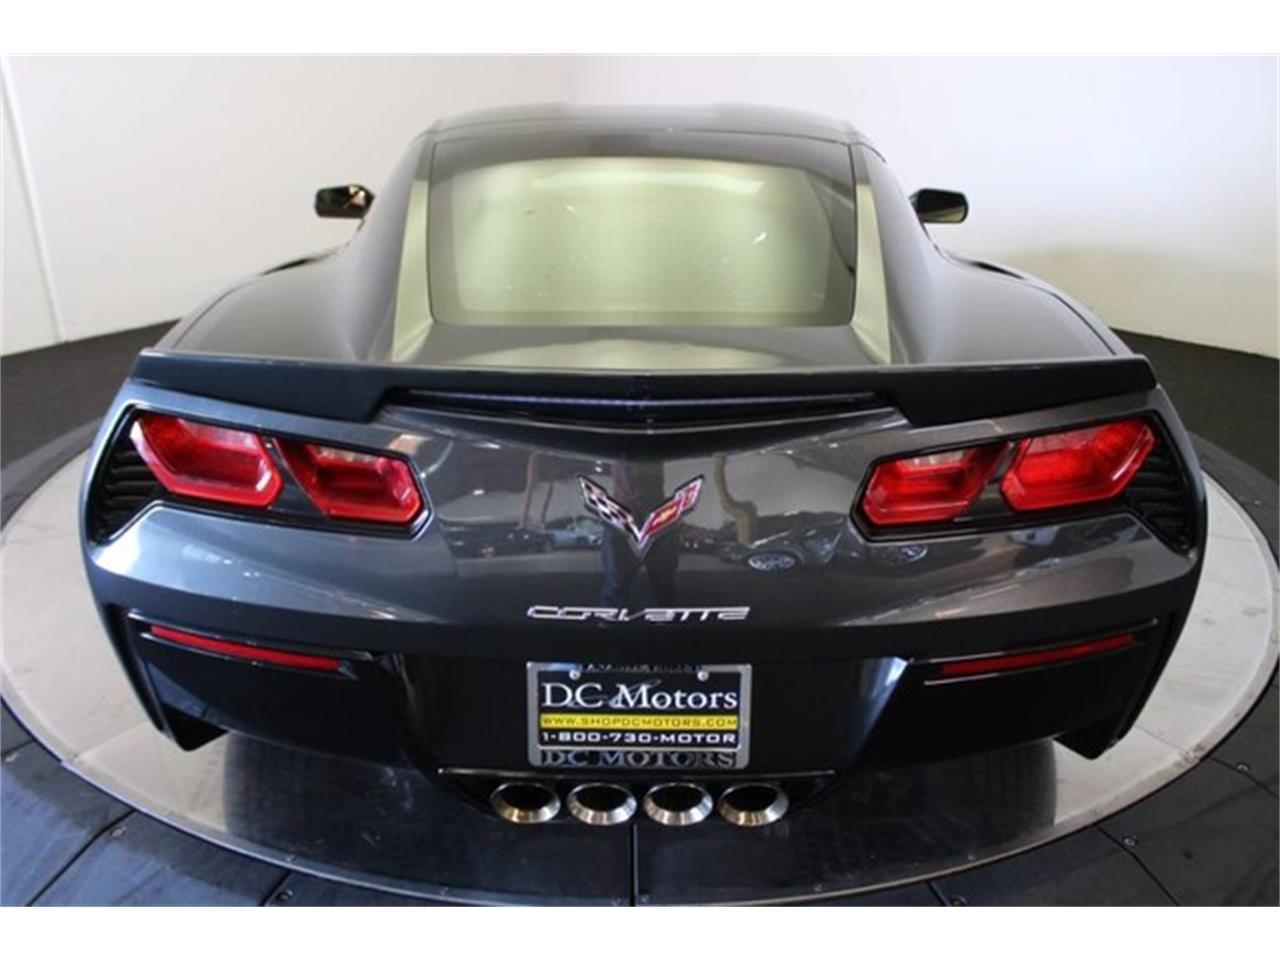 Large Picture of 2017 Chevrolet Corvette located in Anaheim California - $55,900.00 Offered by DC Motors - M7YK